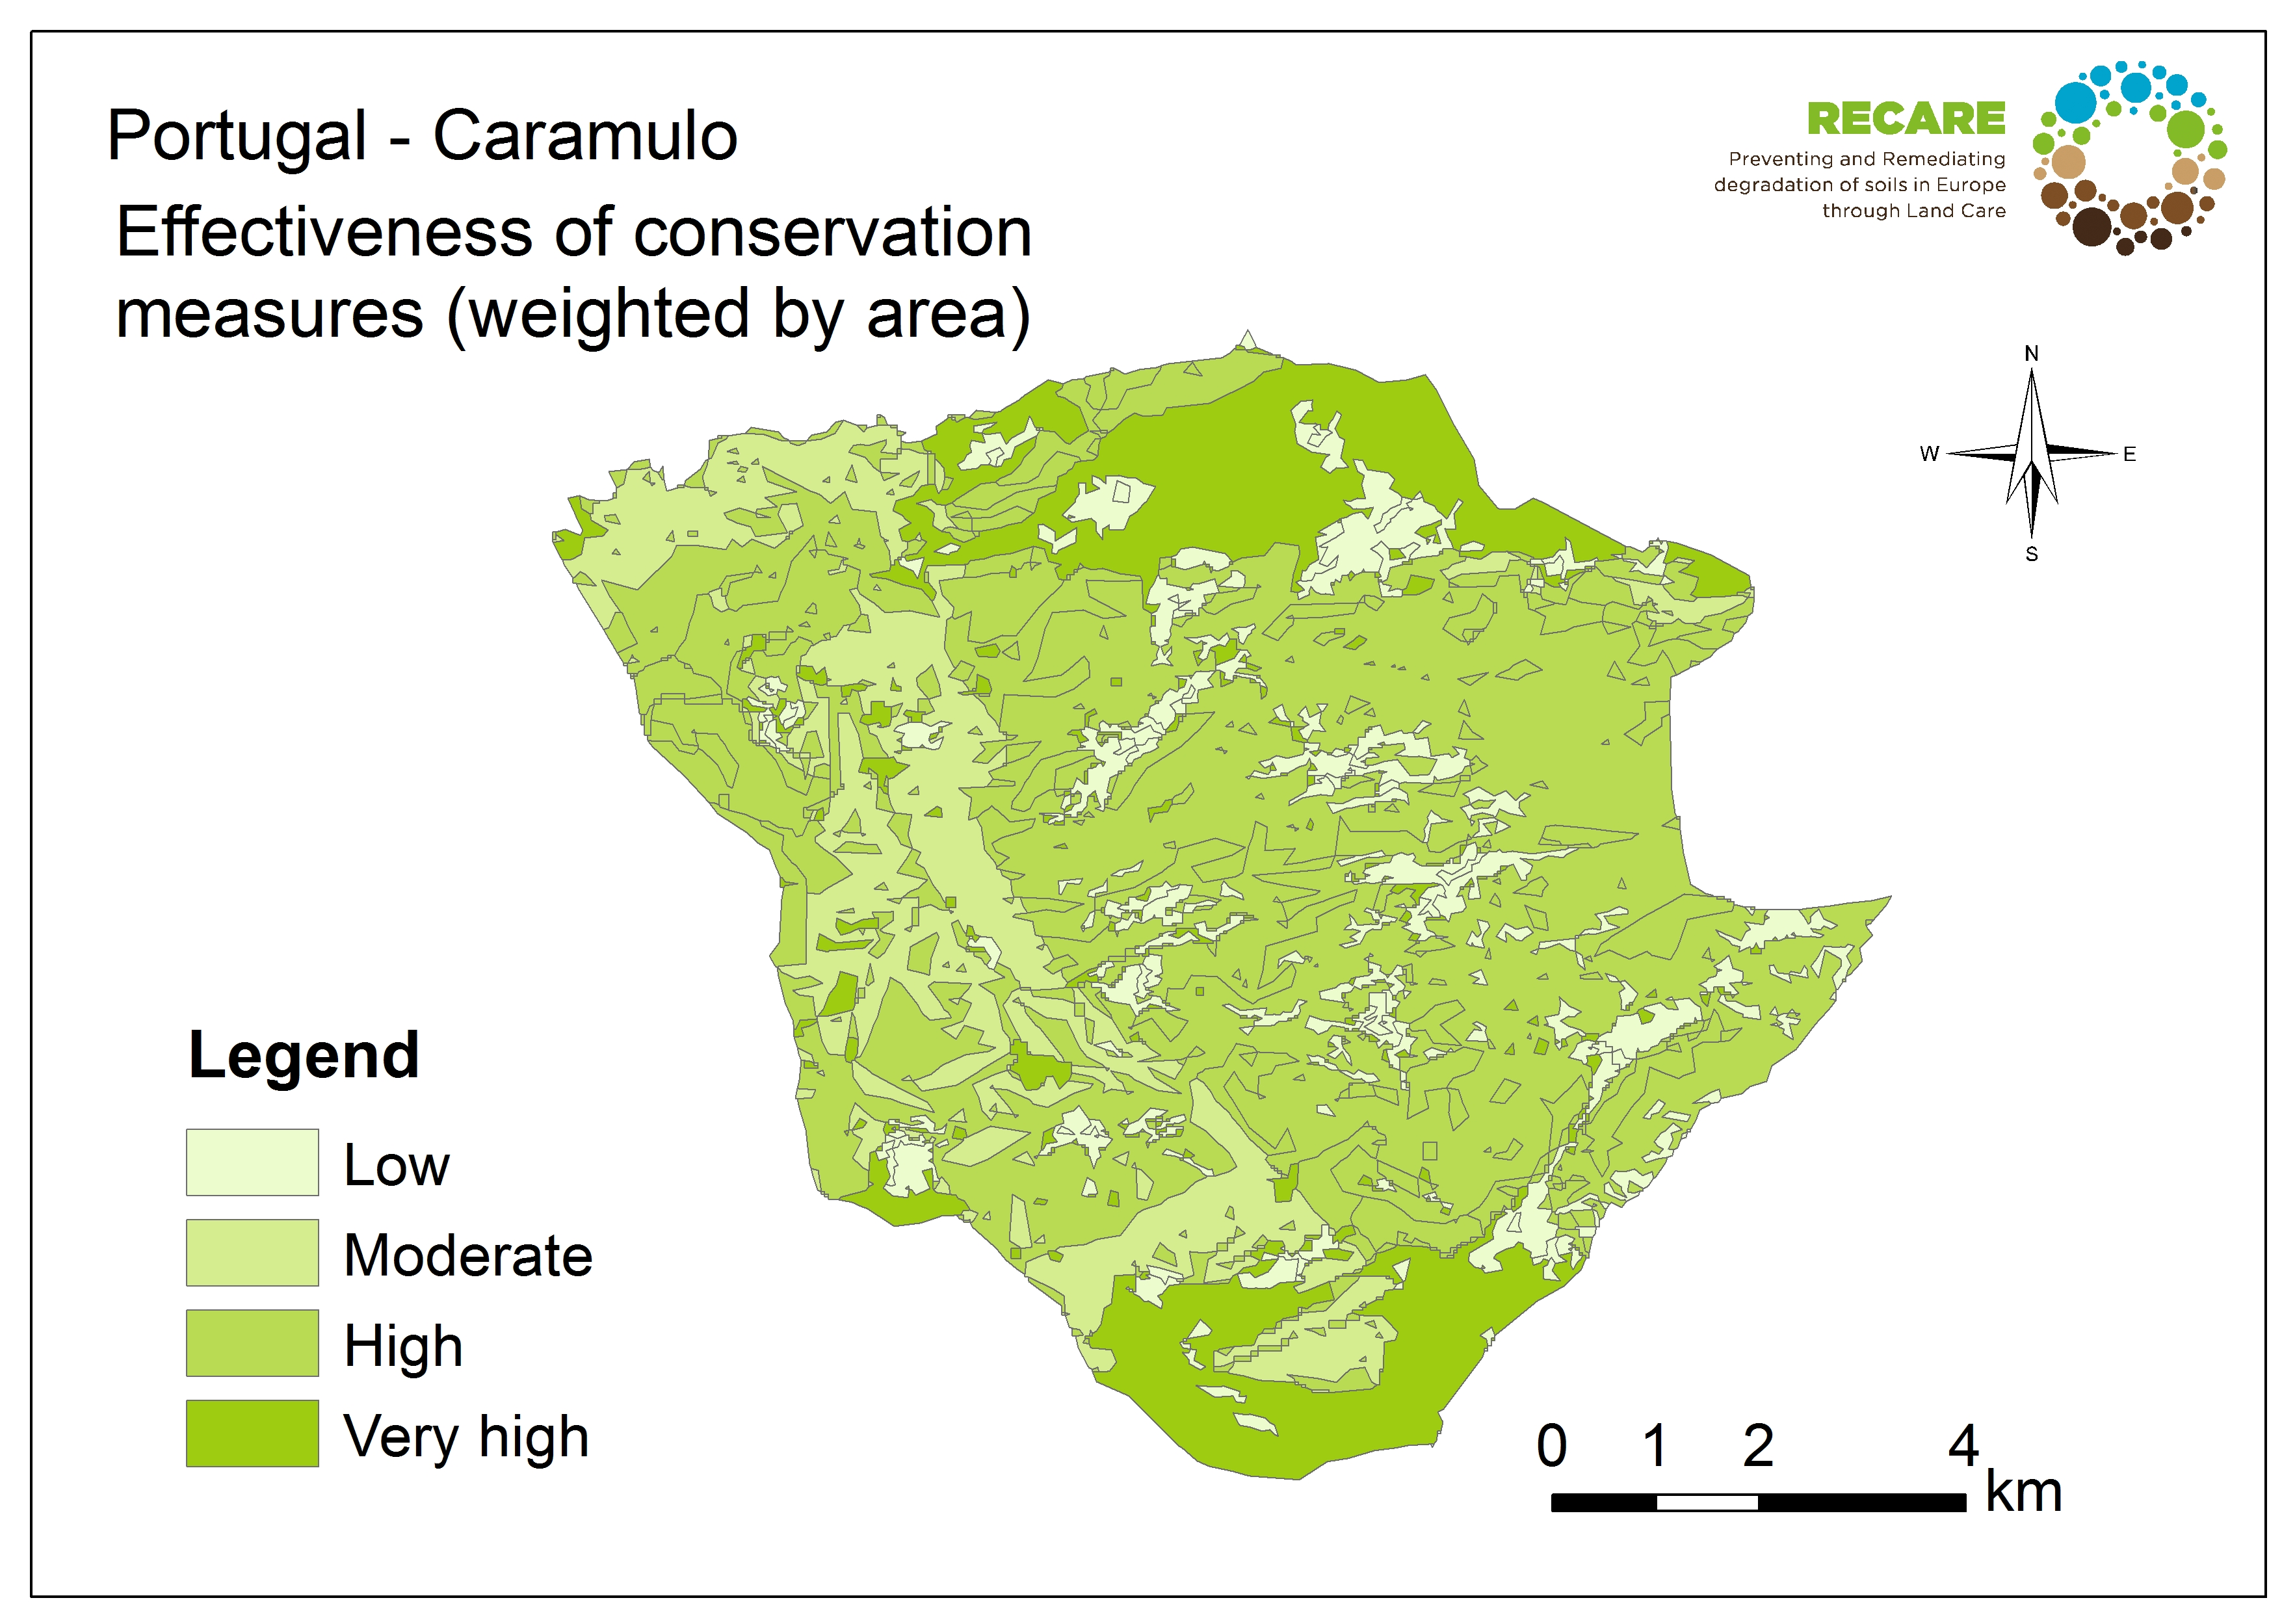 Portugal Caramulo effectiveness of conservation measures